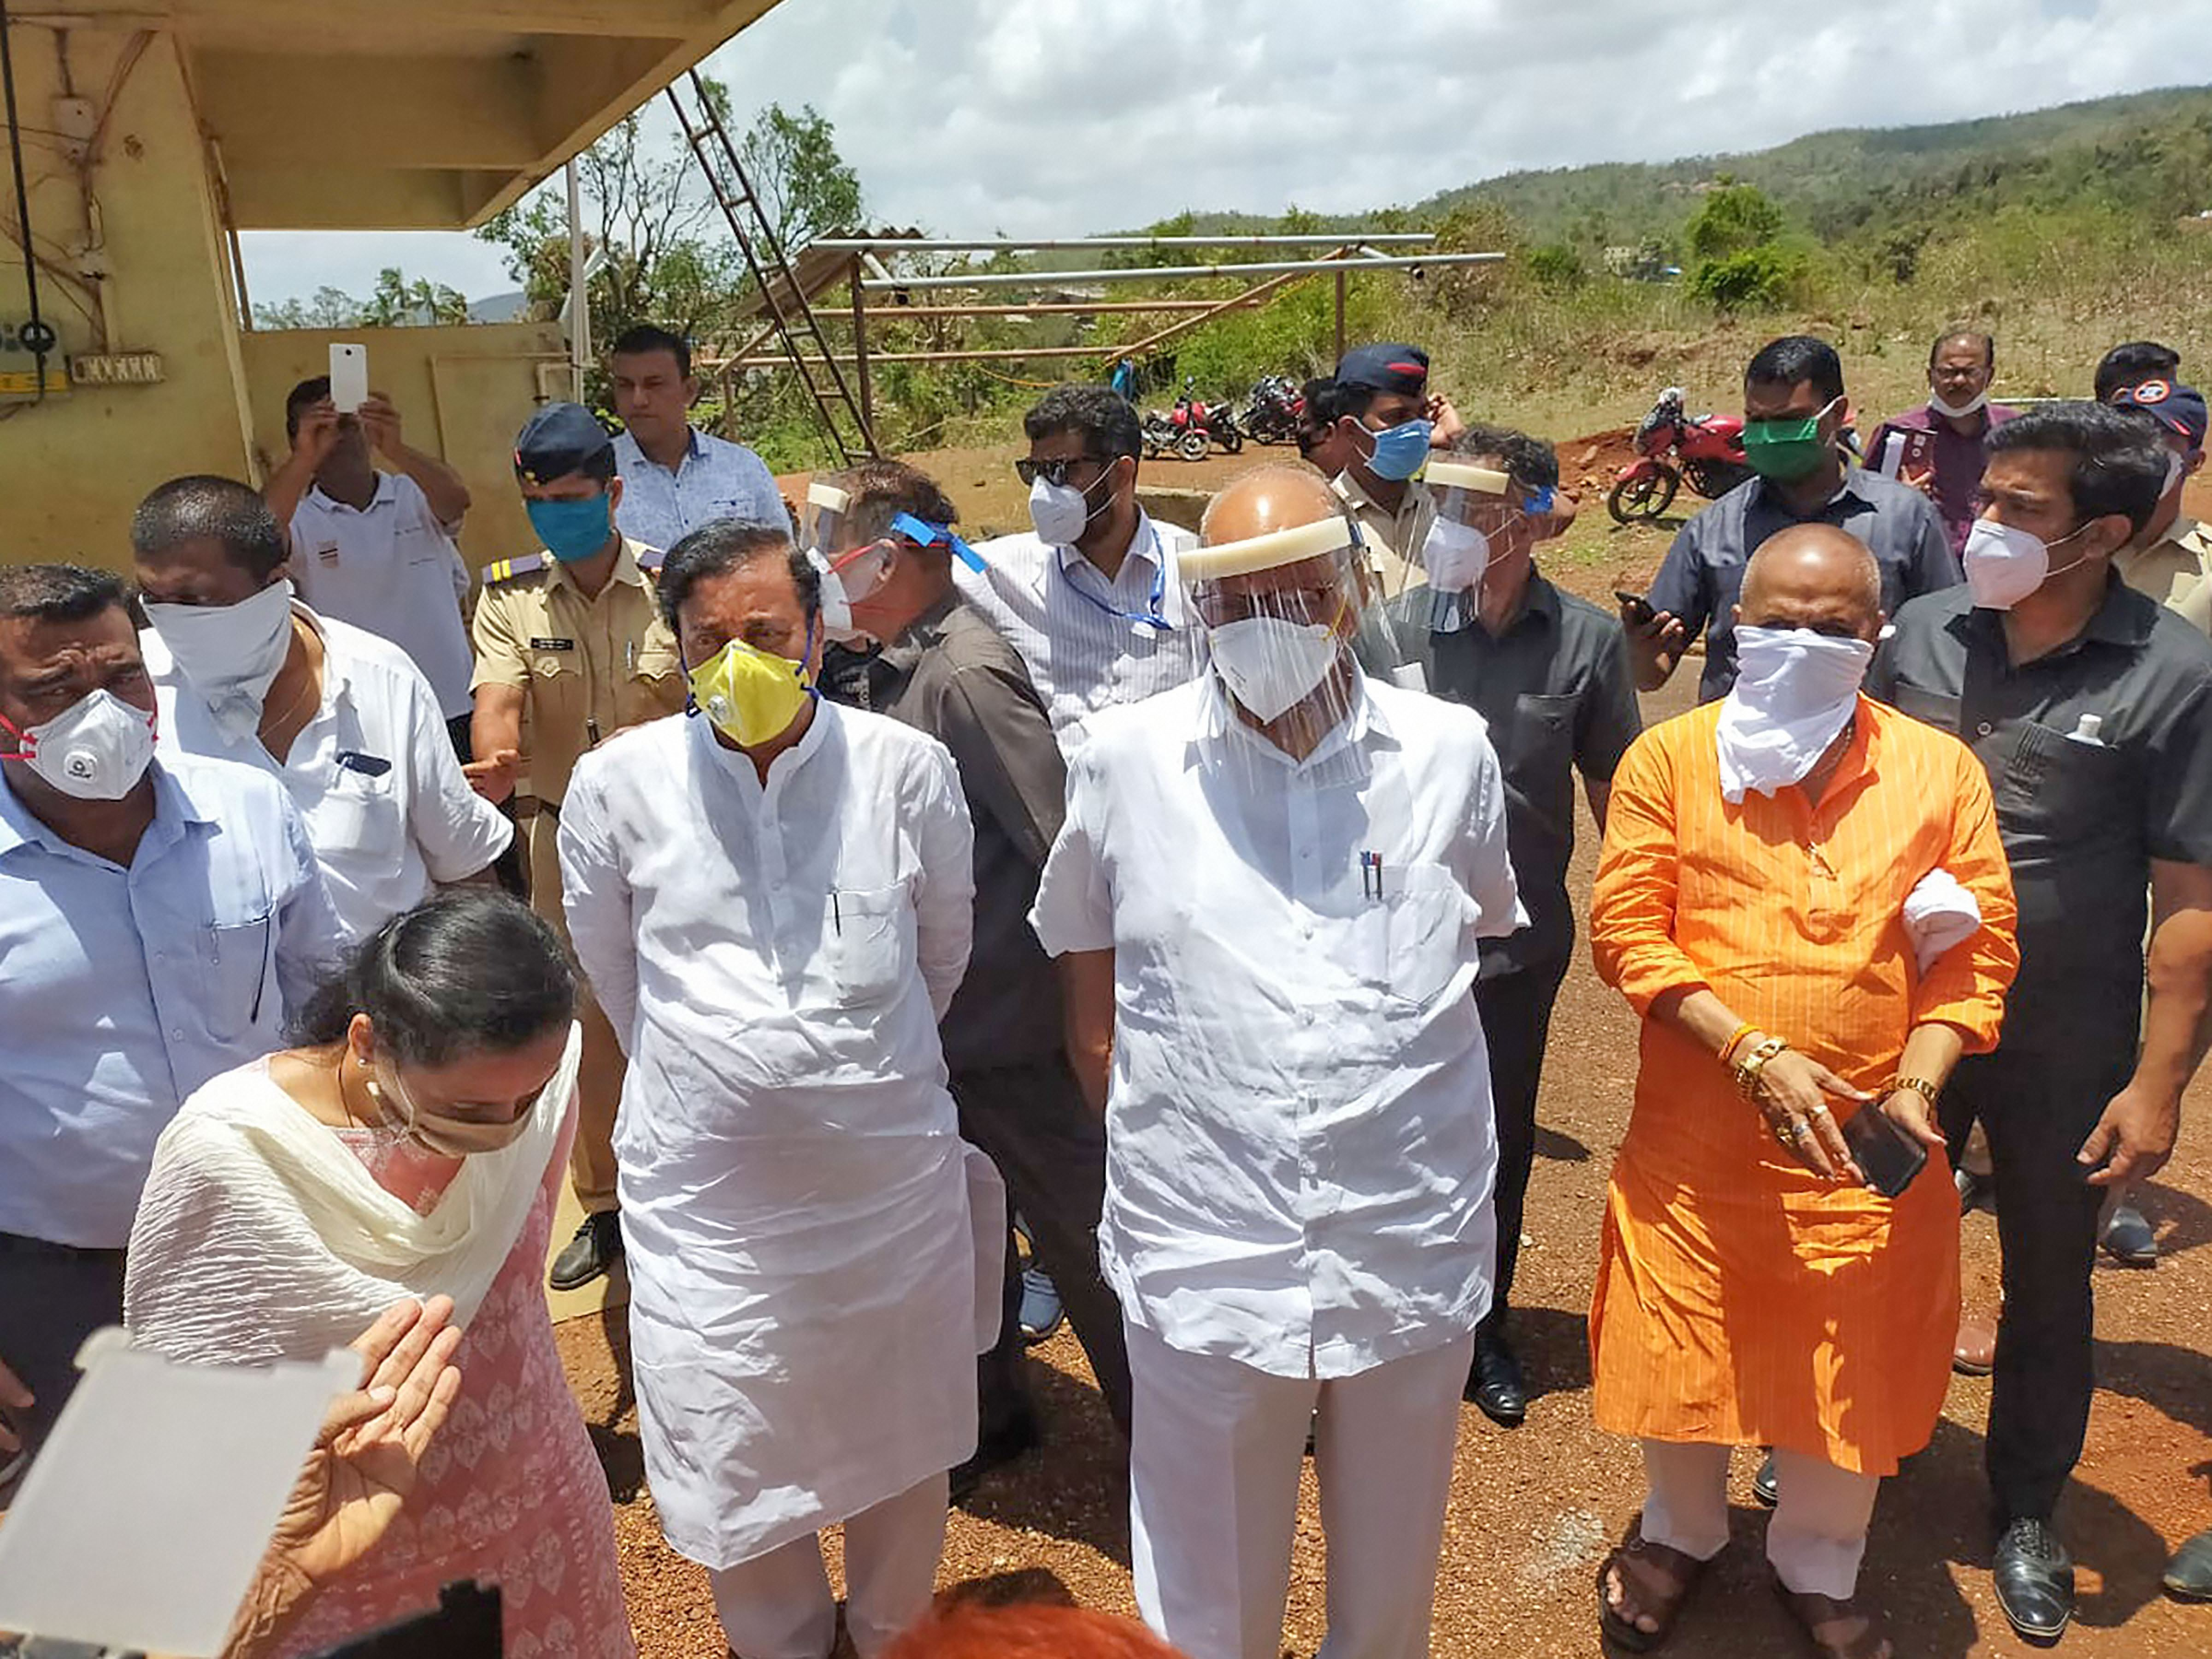 NCP chief Sharad Pawar takes stock of the damage caused by cyclone 'Nisarga, at Mhasla in Raigad district of Maharashtra, Tuesday, June 9, 2020